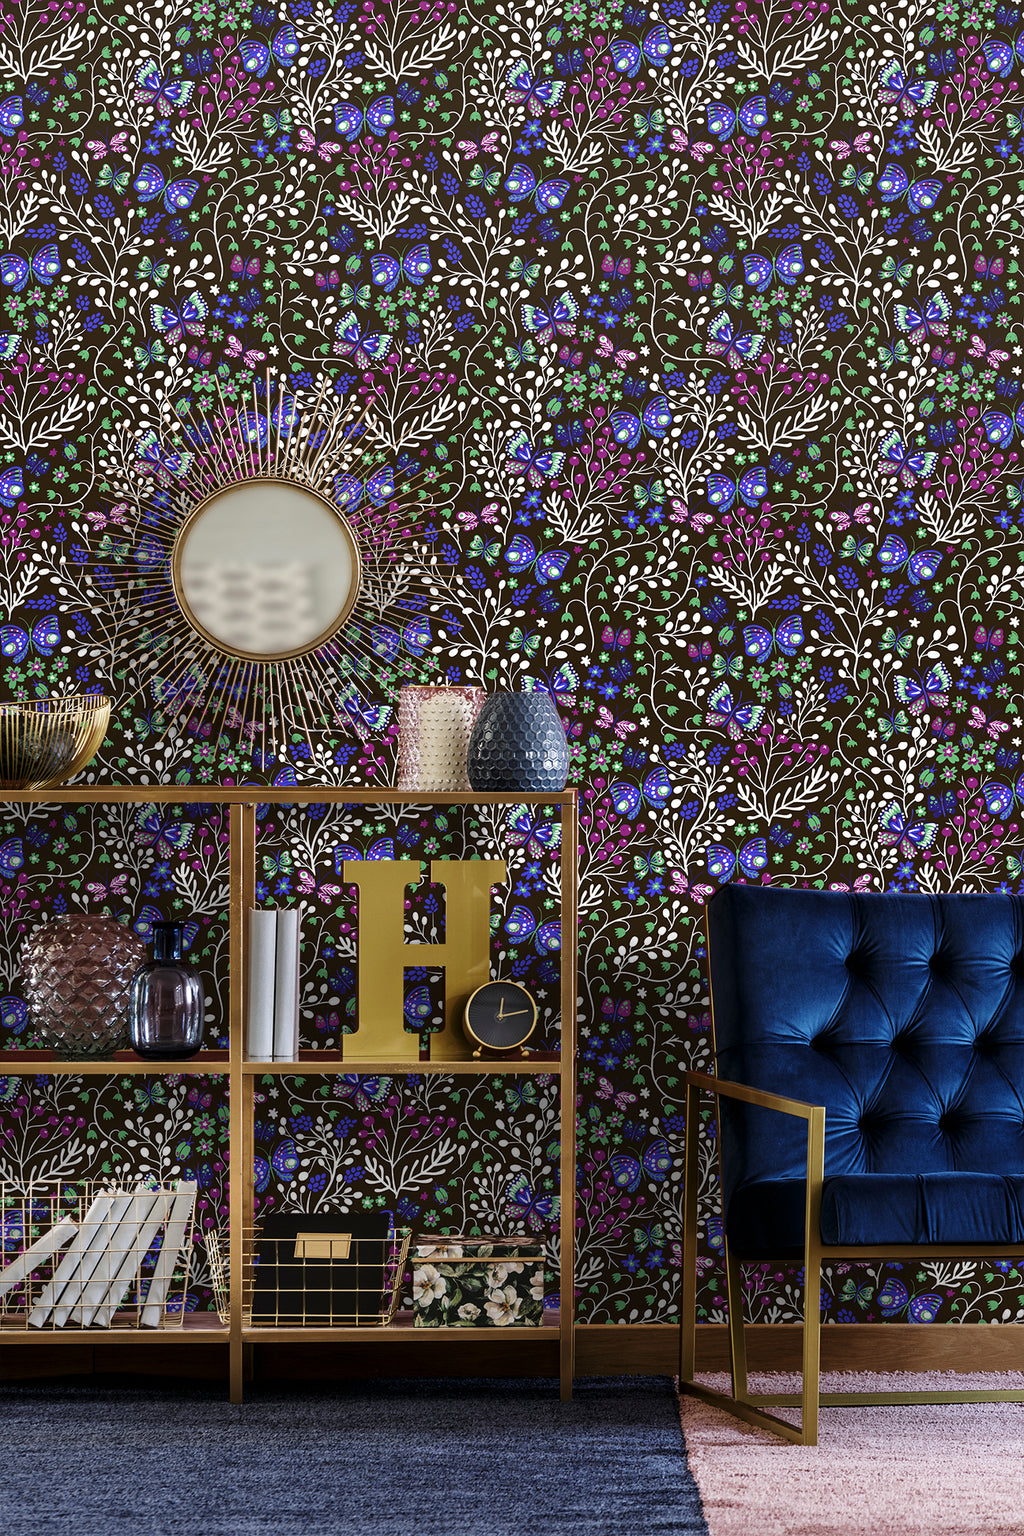 Small patterned flowers and plants with butterflies removable wallpaper behind contemporary blue lounge chair and gold shelves